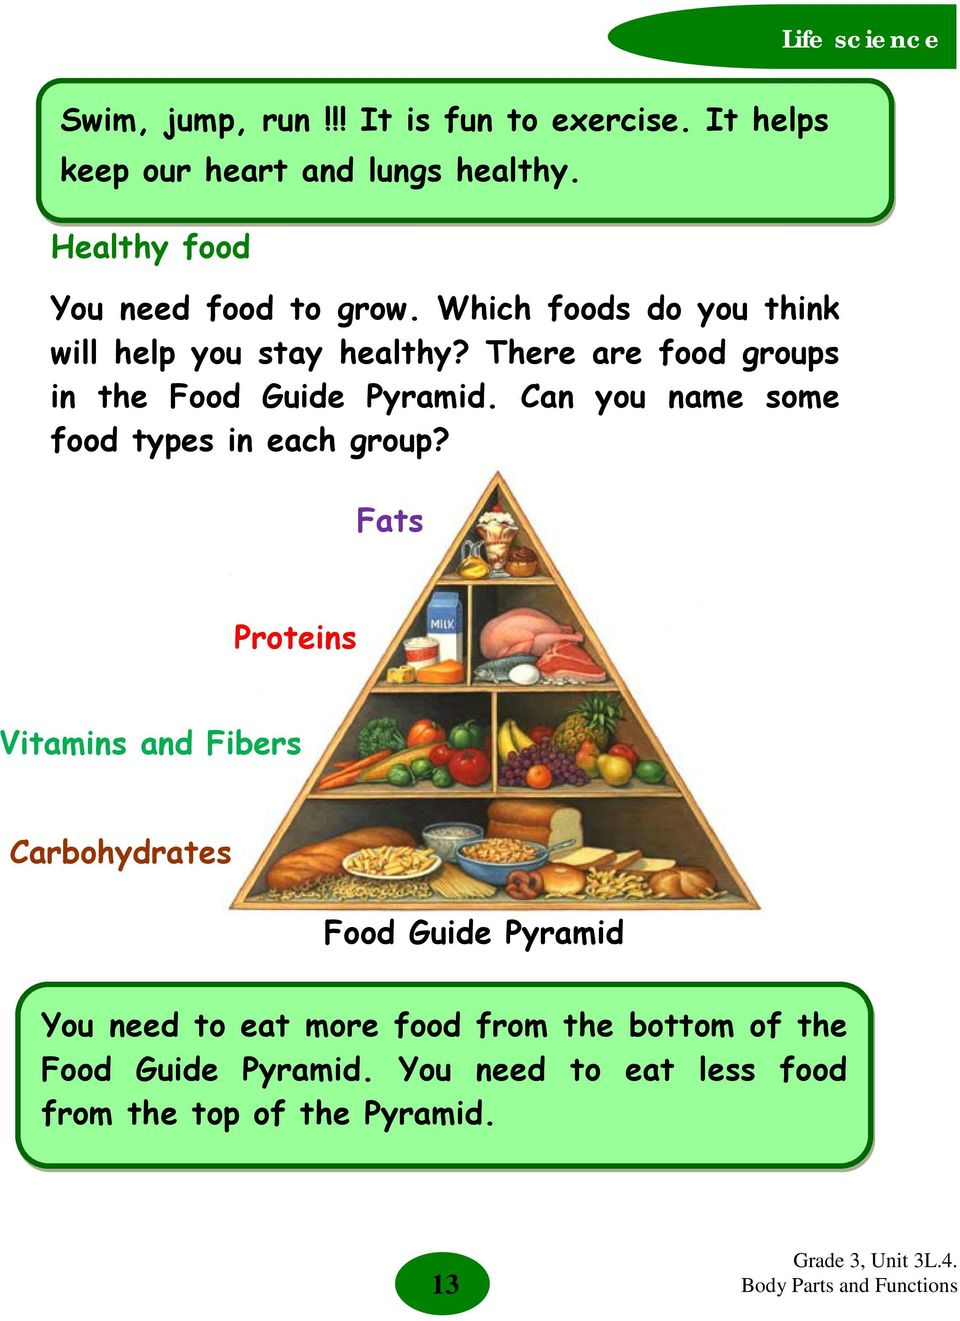 There are food groups in the Food Guide Pyramid. Can you name some food types in each group?